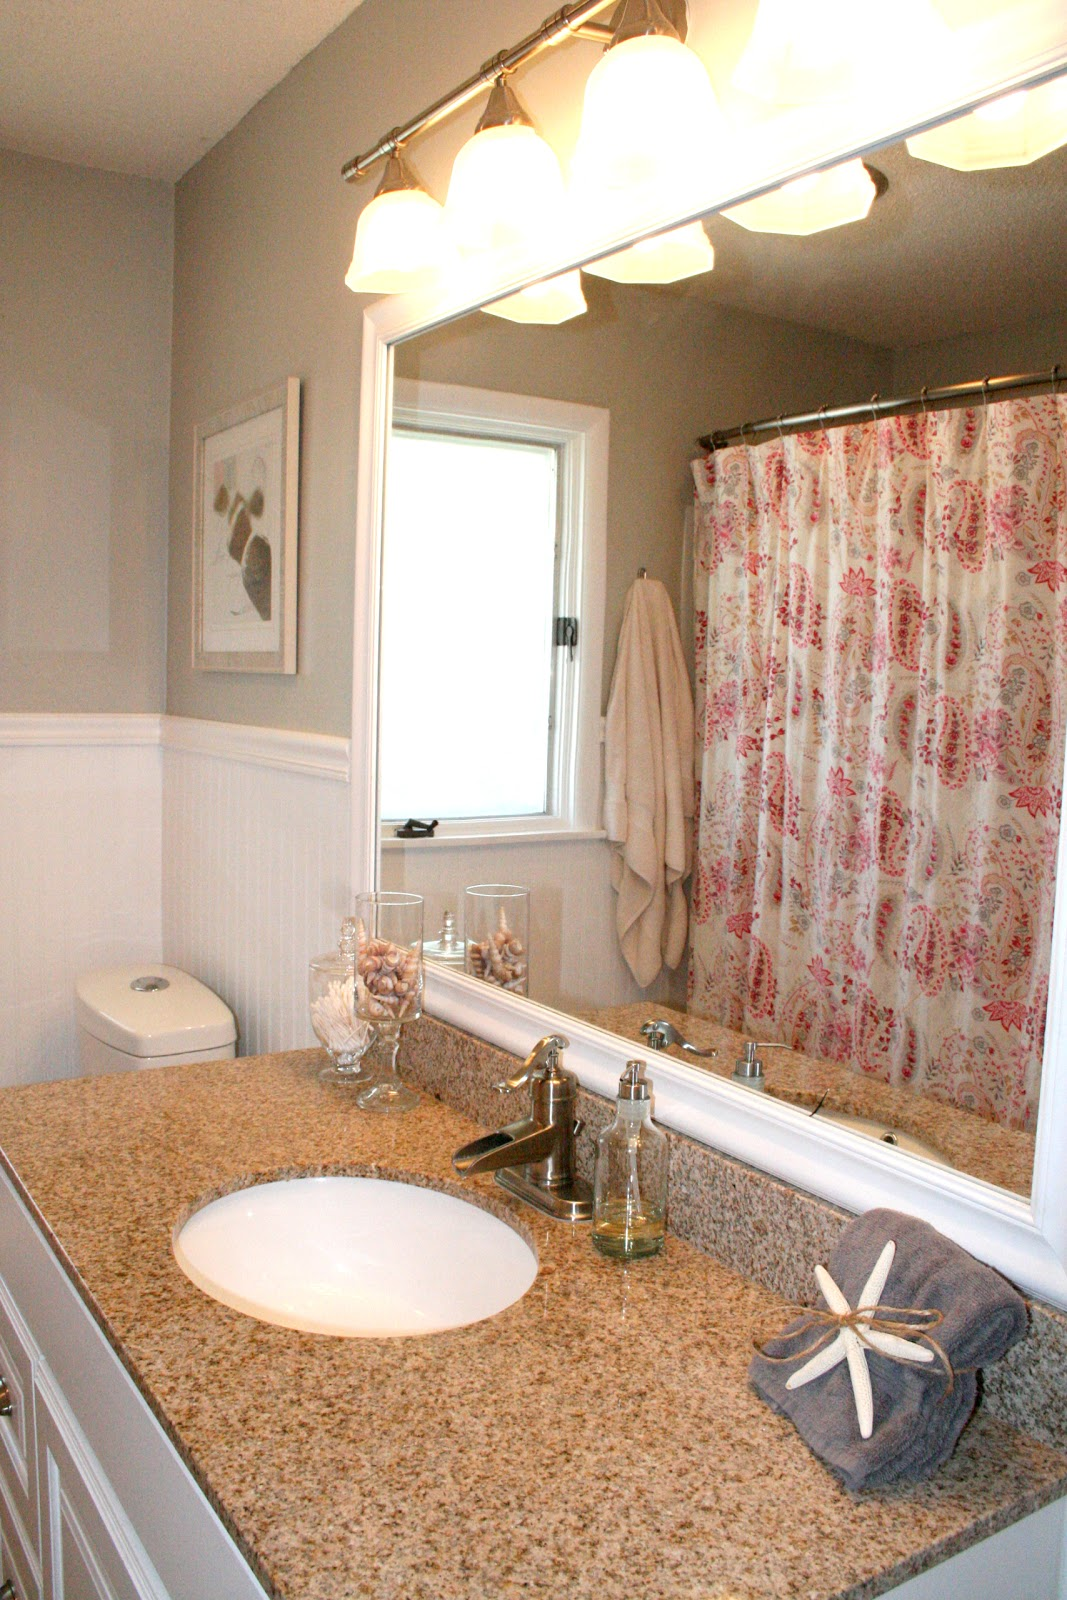 remodelaholic | no more pink tile: bathroom remodel